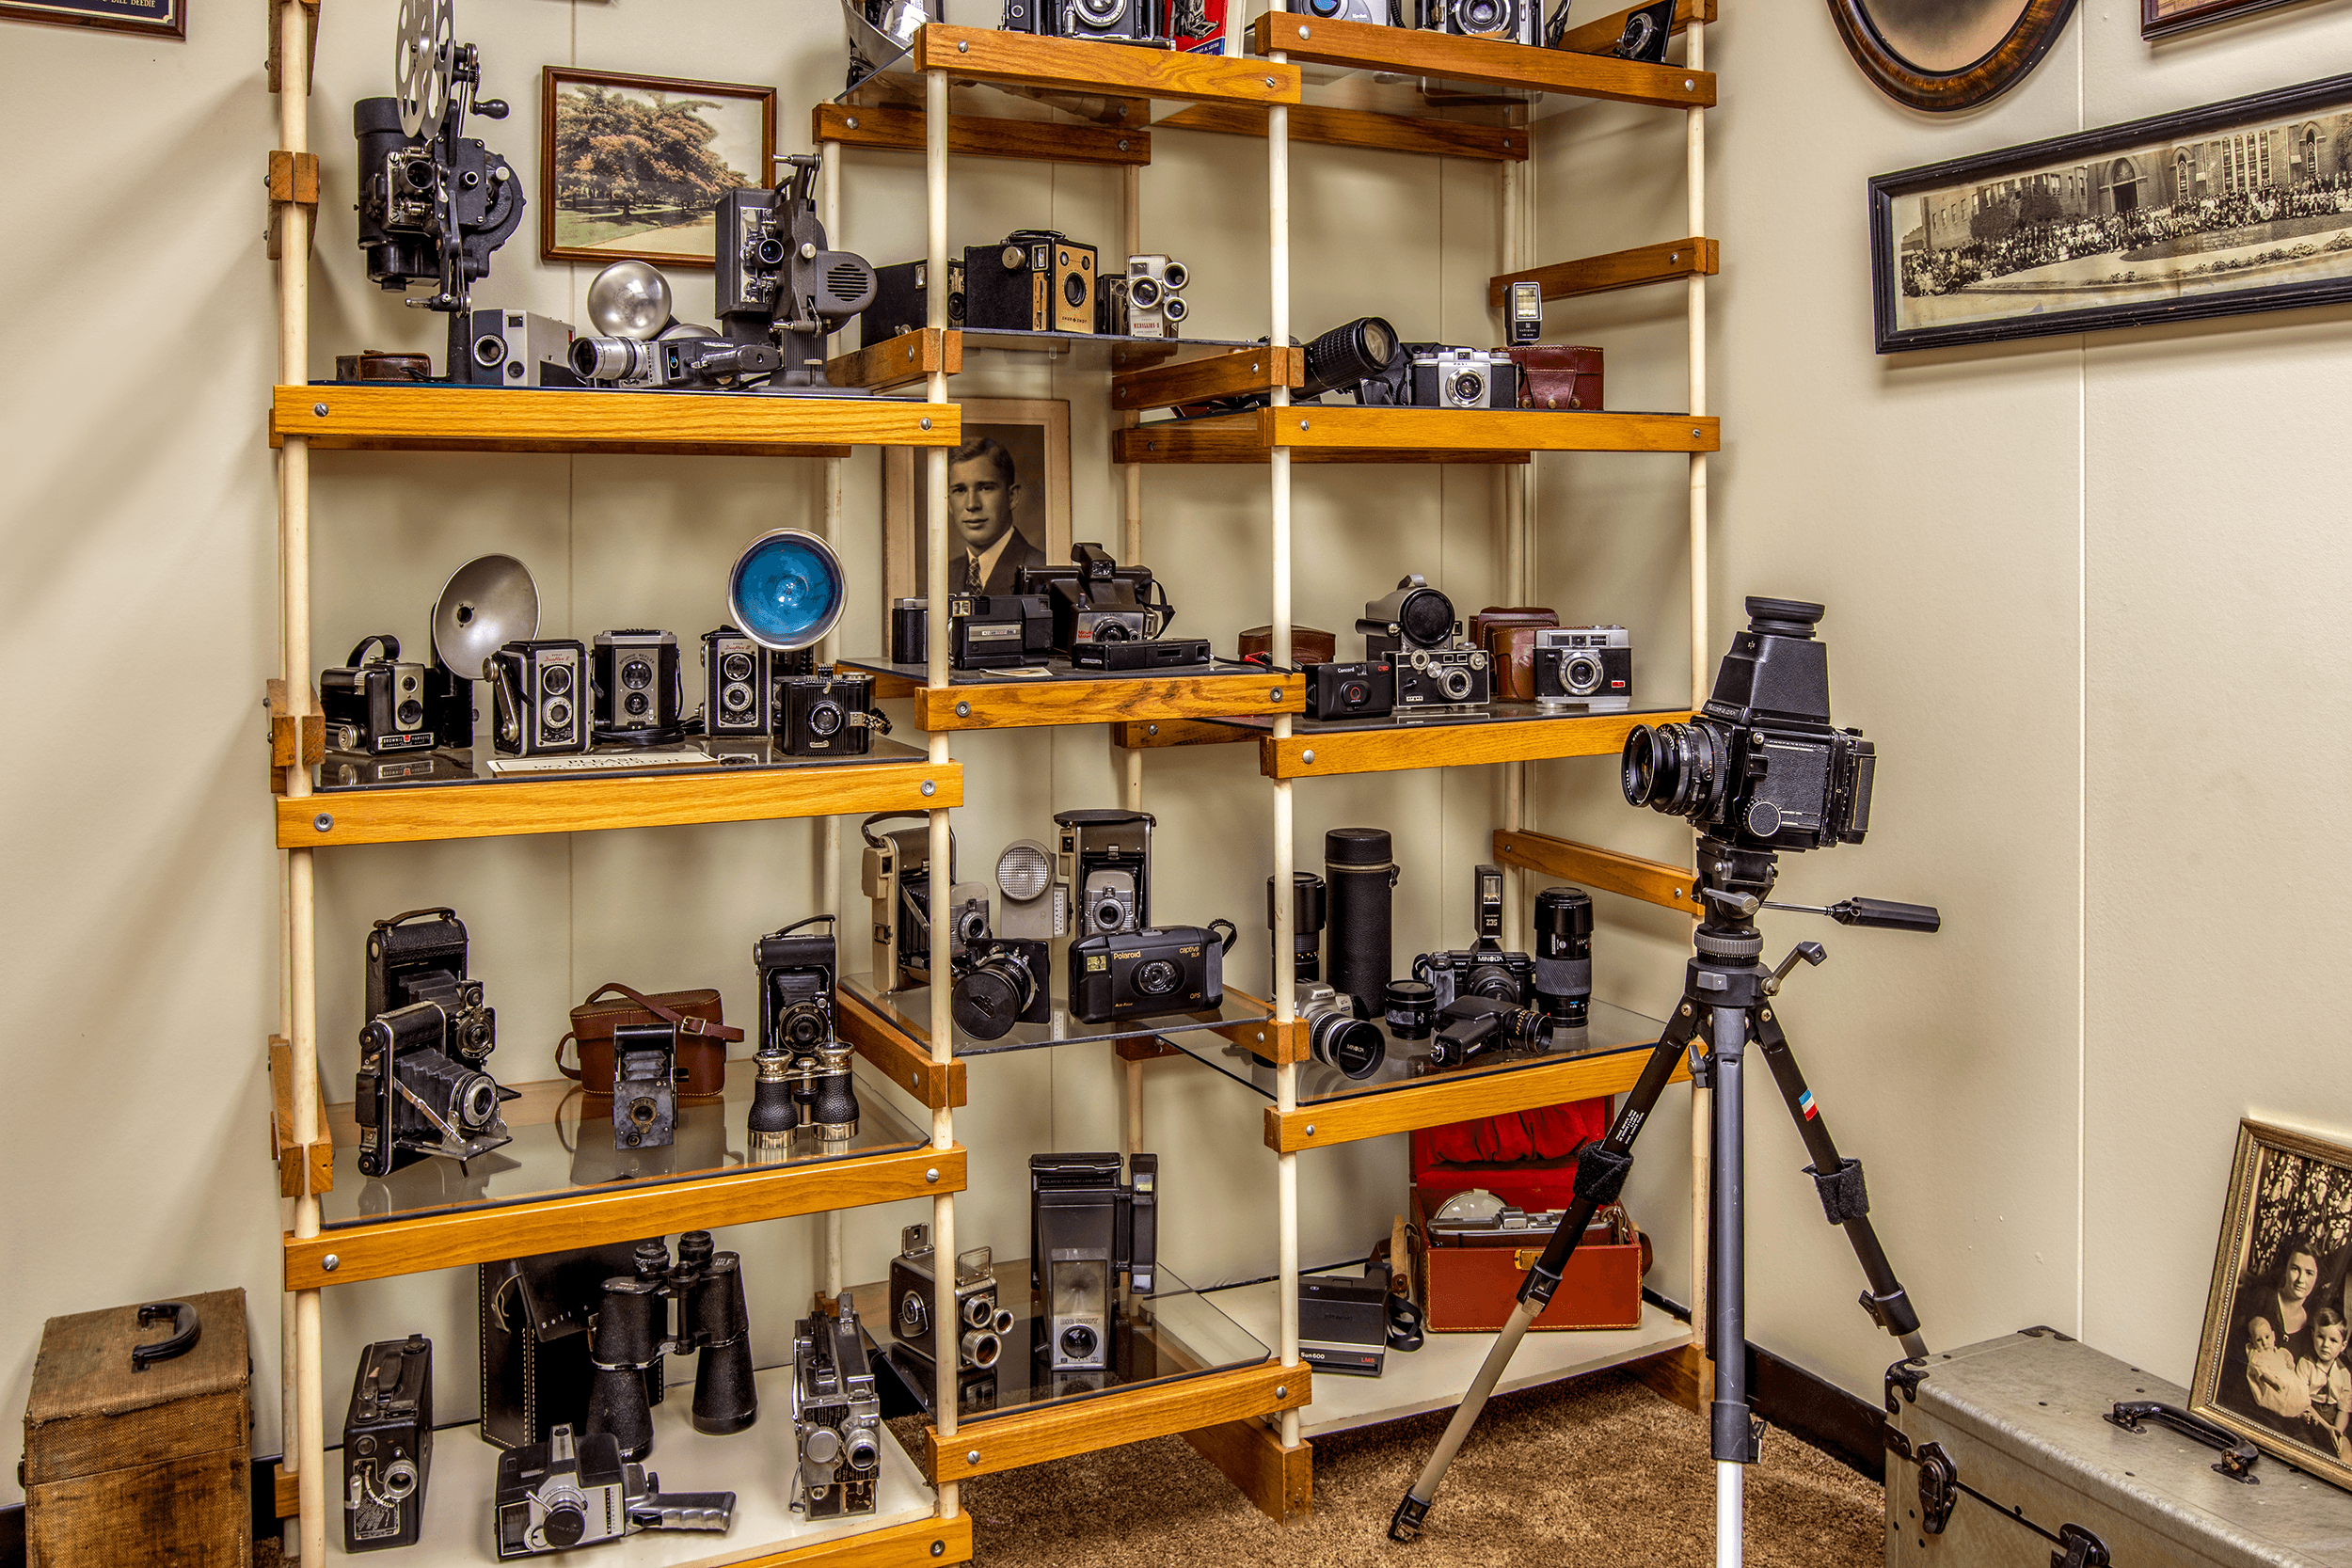 The  Camera Room  showcases a collection of vintage cameras covering almost 100 years of photography equipment from the late 1800s through to the 1980s.